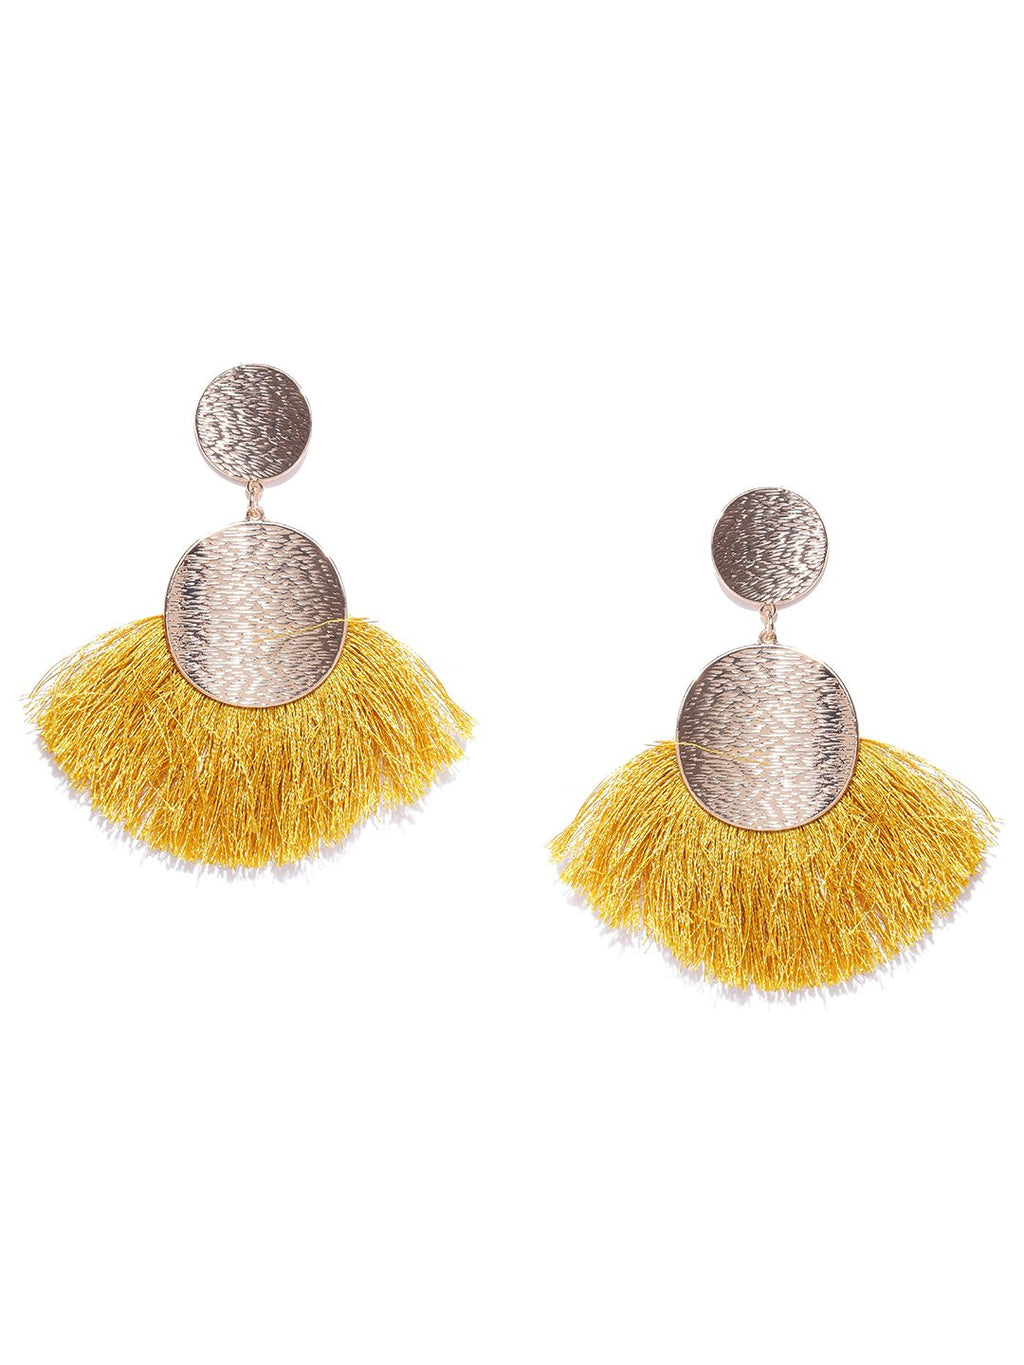 Blueberry gold and yellow fringes drop earrings